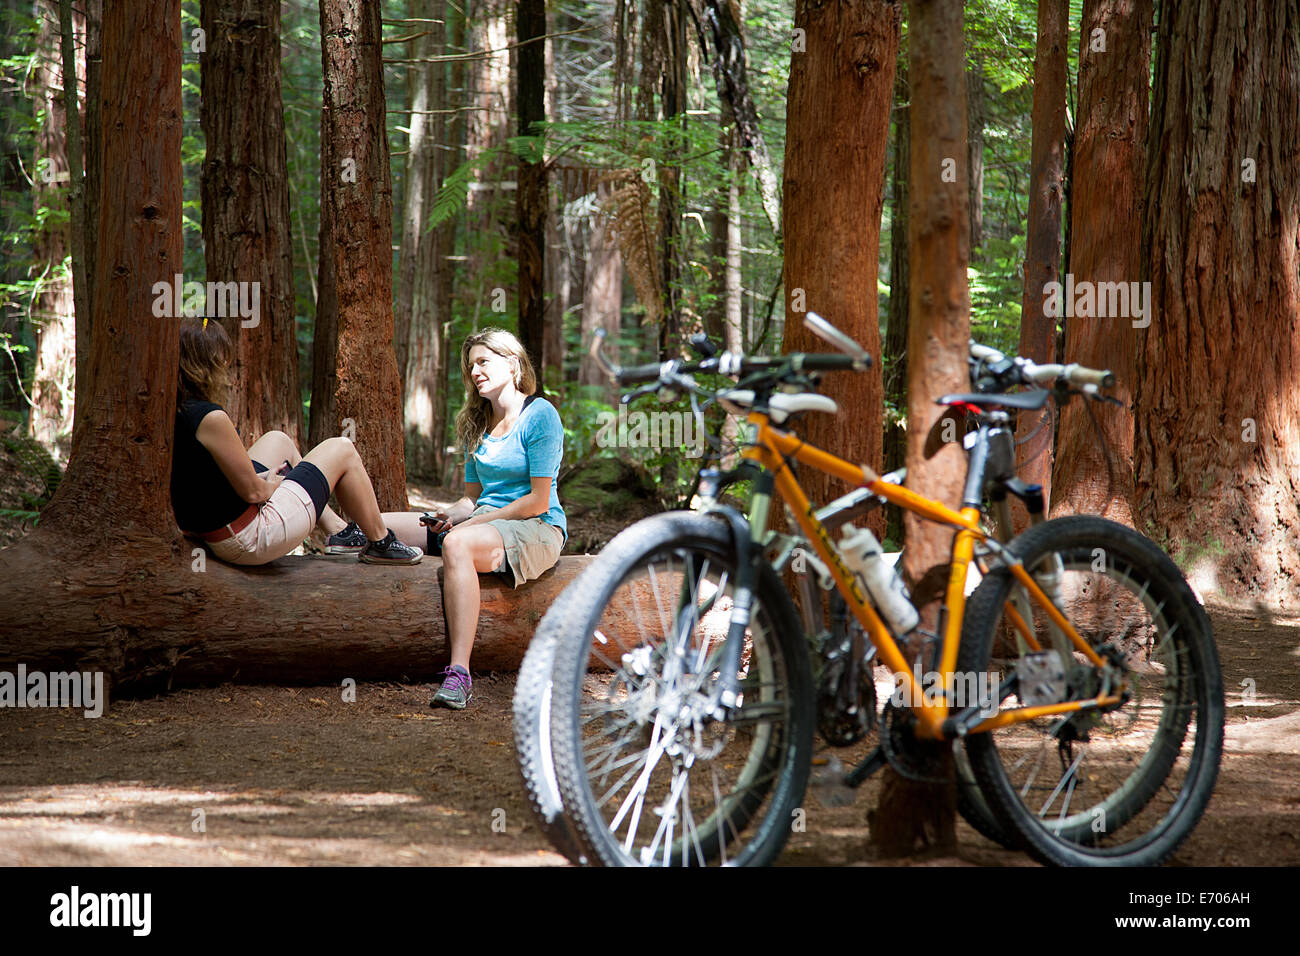 Two women mountain bikers chatting on tree trunk in forest - Stock Image